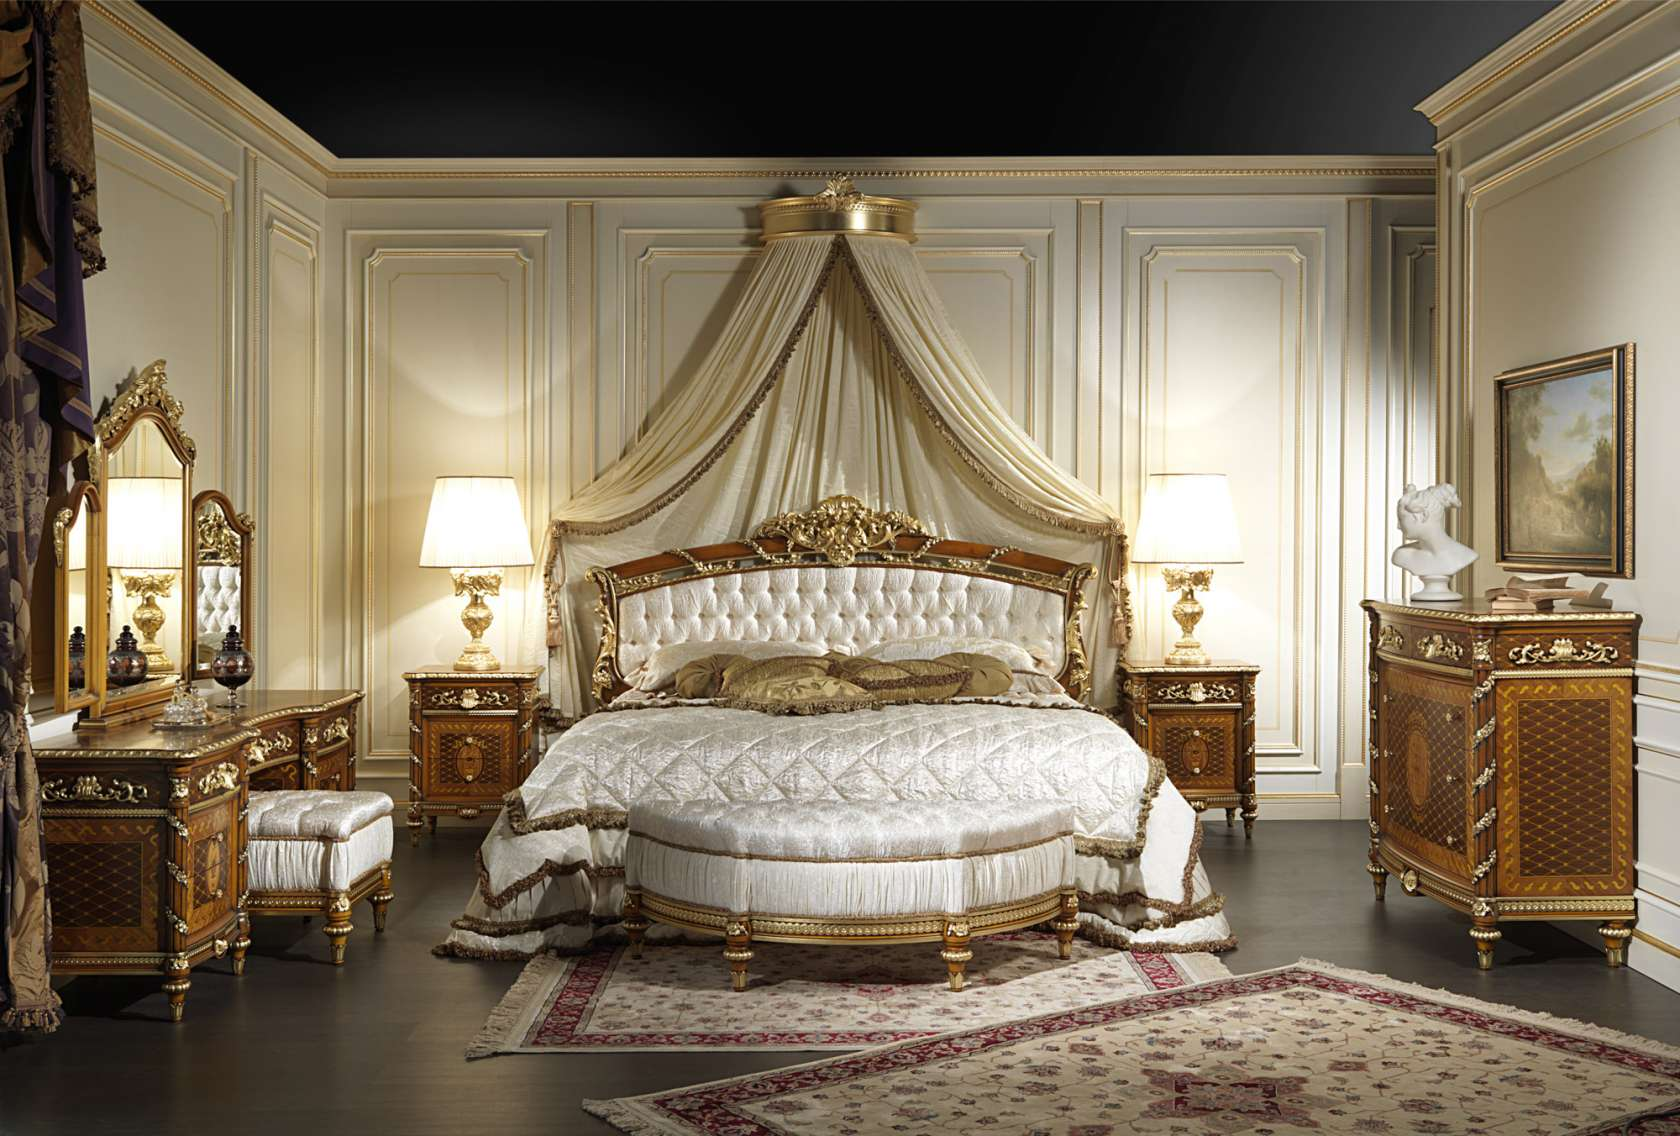 Furniture for walnut bedroom art  2011. Furniture for walnut bedroom art  2011   Vimercati Classic Furniture